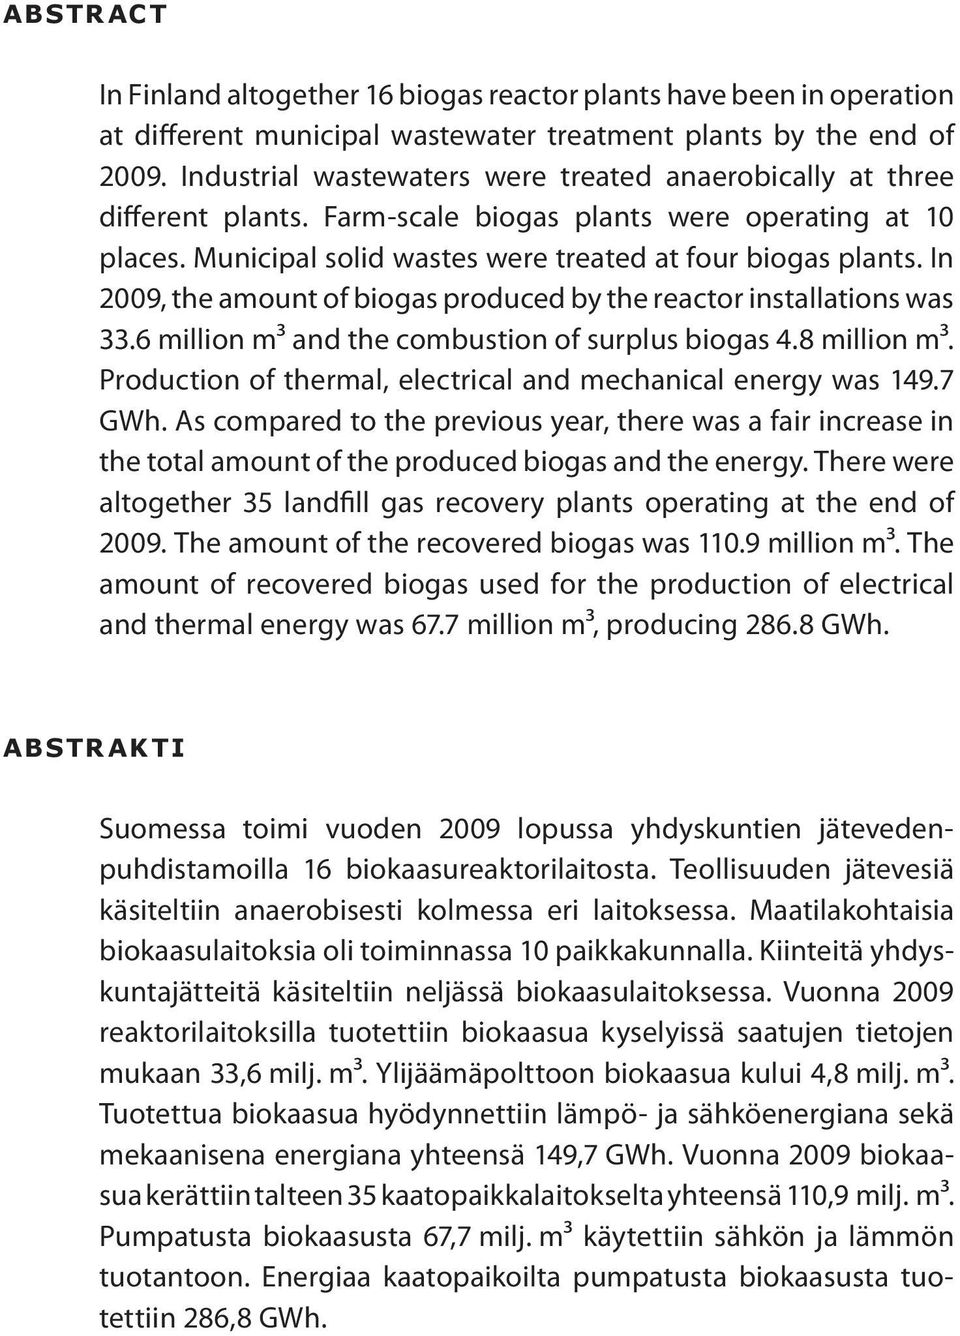 In 2009, the amount of biogas produced by the reactor installations was 33.6 million m3 and the combustion of surplus biogas 4.8 million m3.